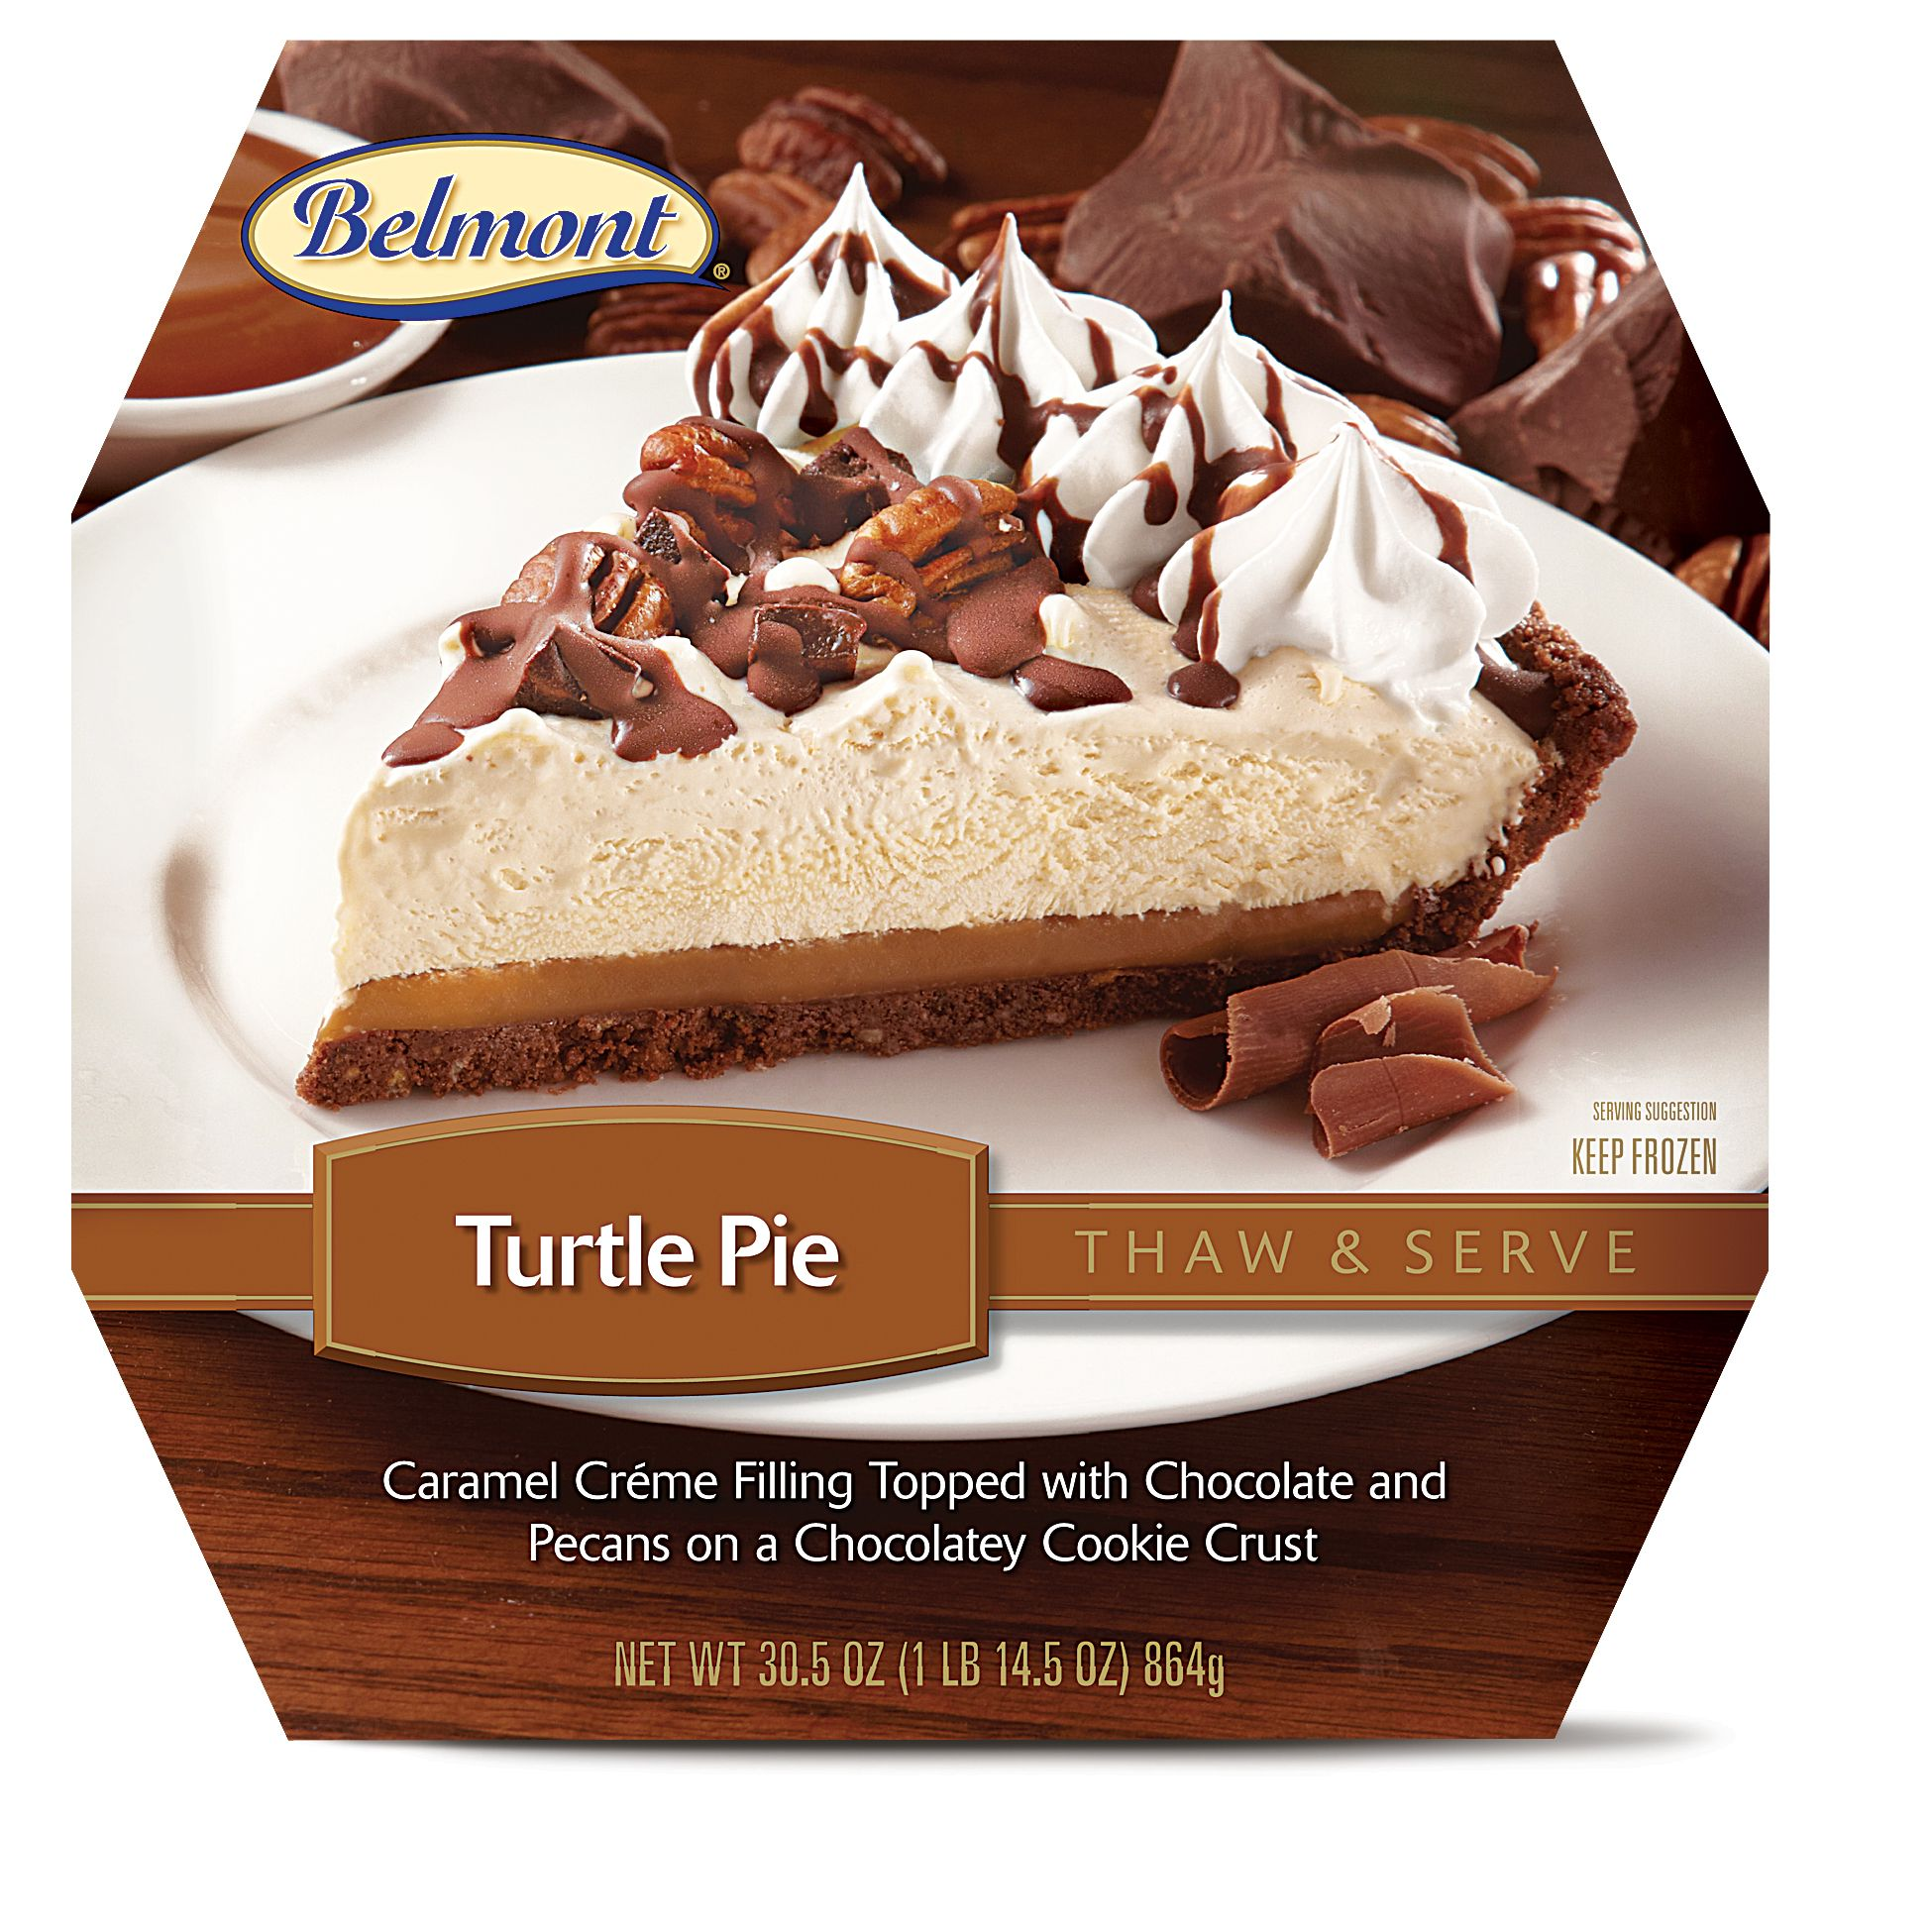 Belmont Turtle Cheesecake From Aldi Winner Of The Plma S Salute To Excellence Award Dessert Recipes Food Turtle Cheesecake